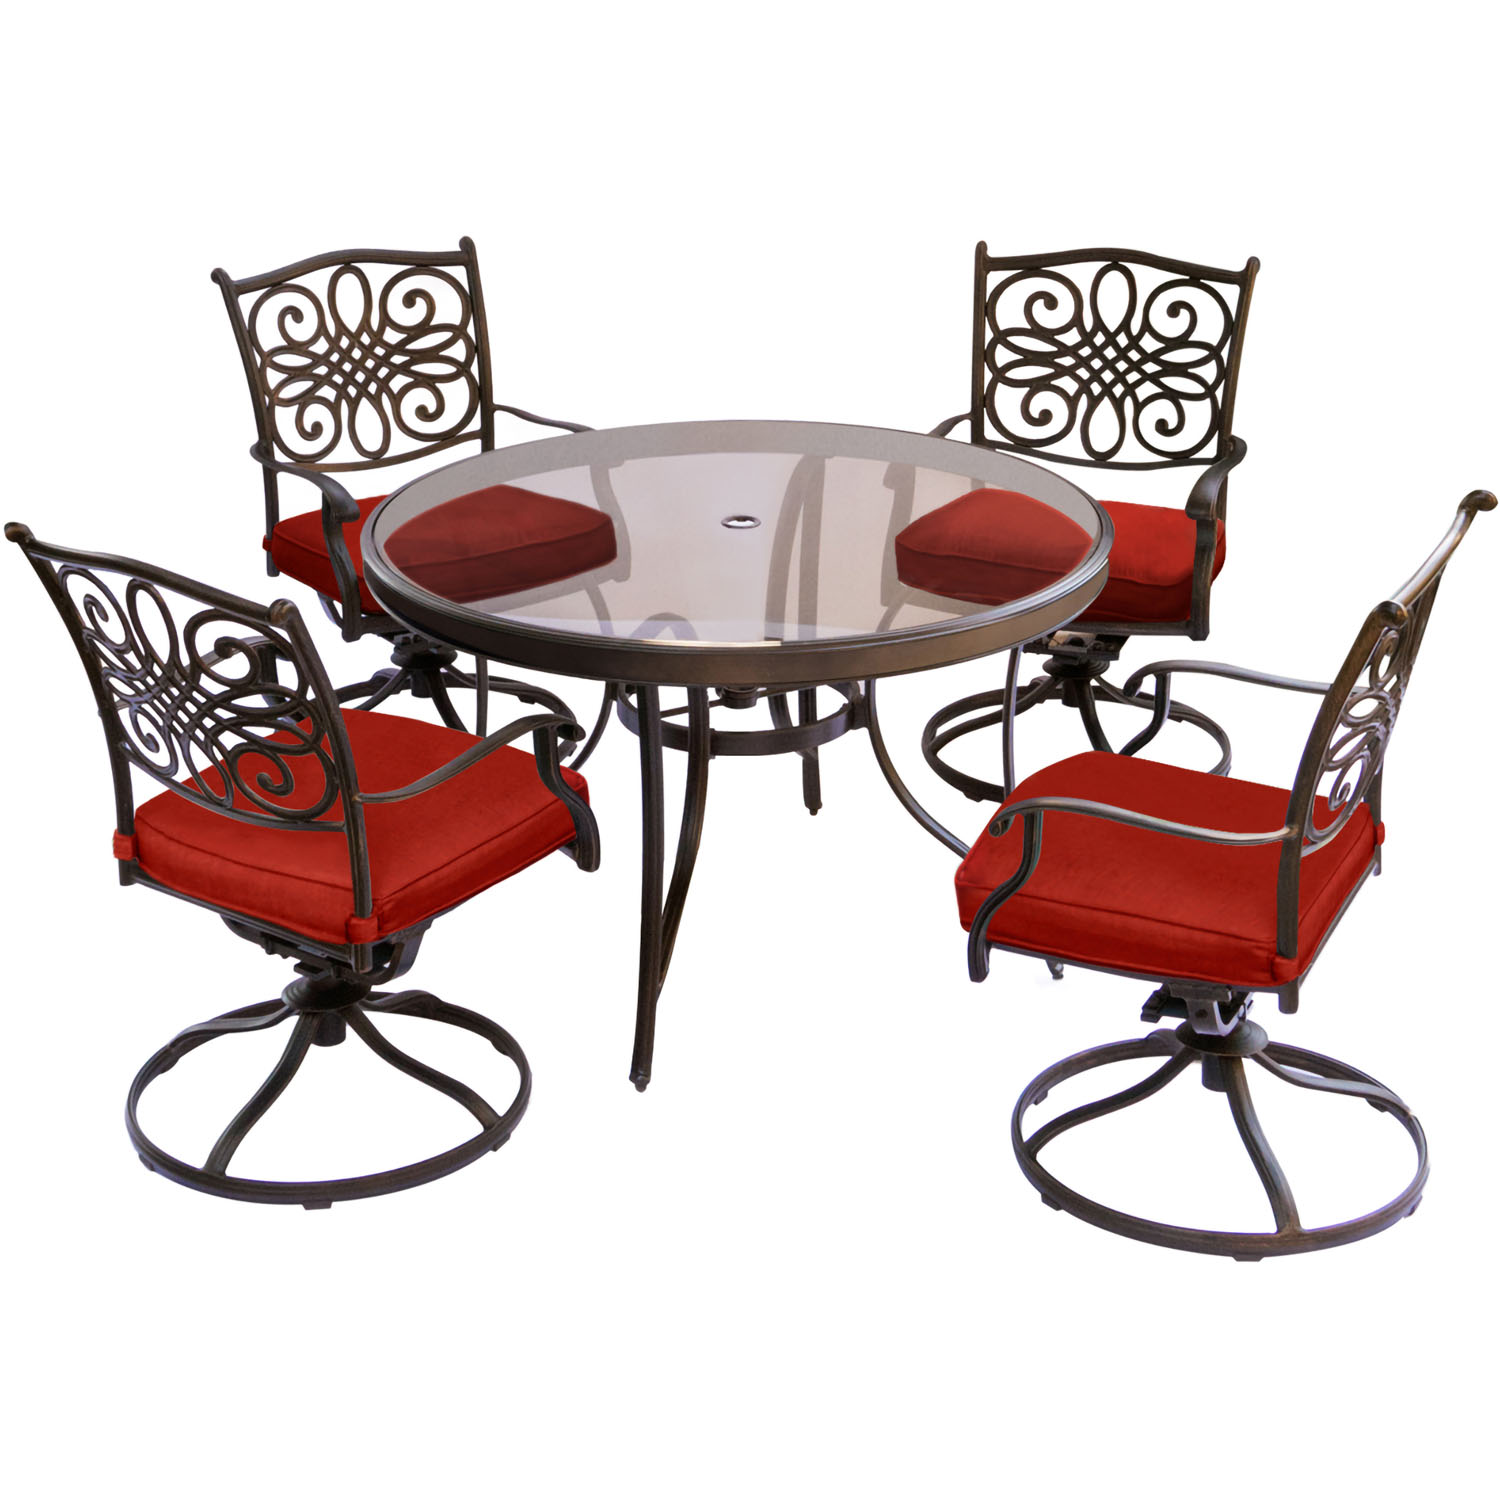 Hanover Traditions 5-Piece Outdoor Dining Set with Round Glass-Top Table and 4 Swivel Rockers